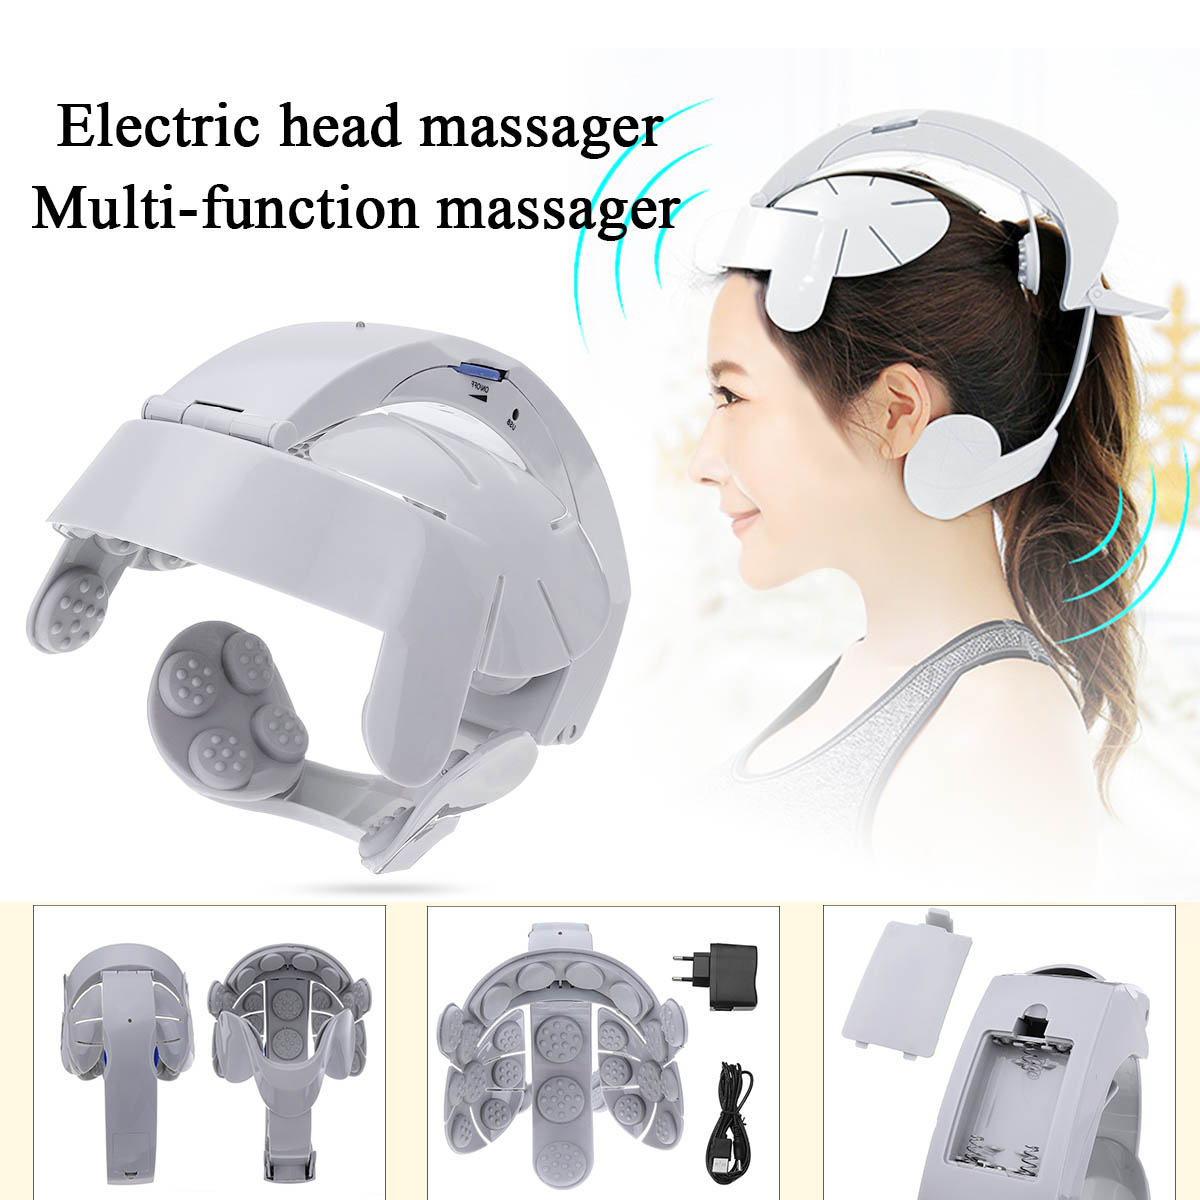 Head Vibration Massage Easy-brain Massager Electric Head Massage Relax Brain Acupuncture Points Stress Release Machine UK/EU/US relax acupuncture points electric head massager for health care relaxation head acupoint massage free shipping